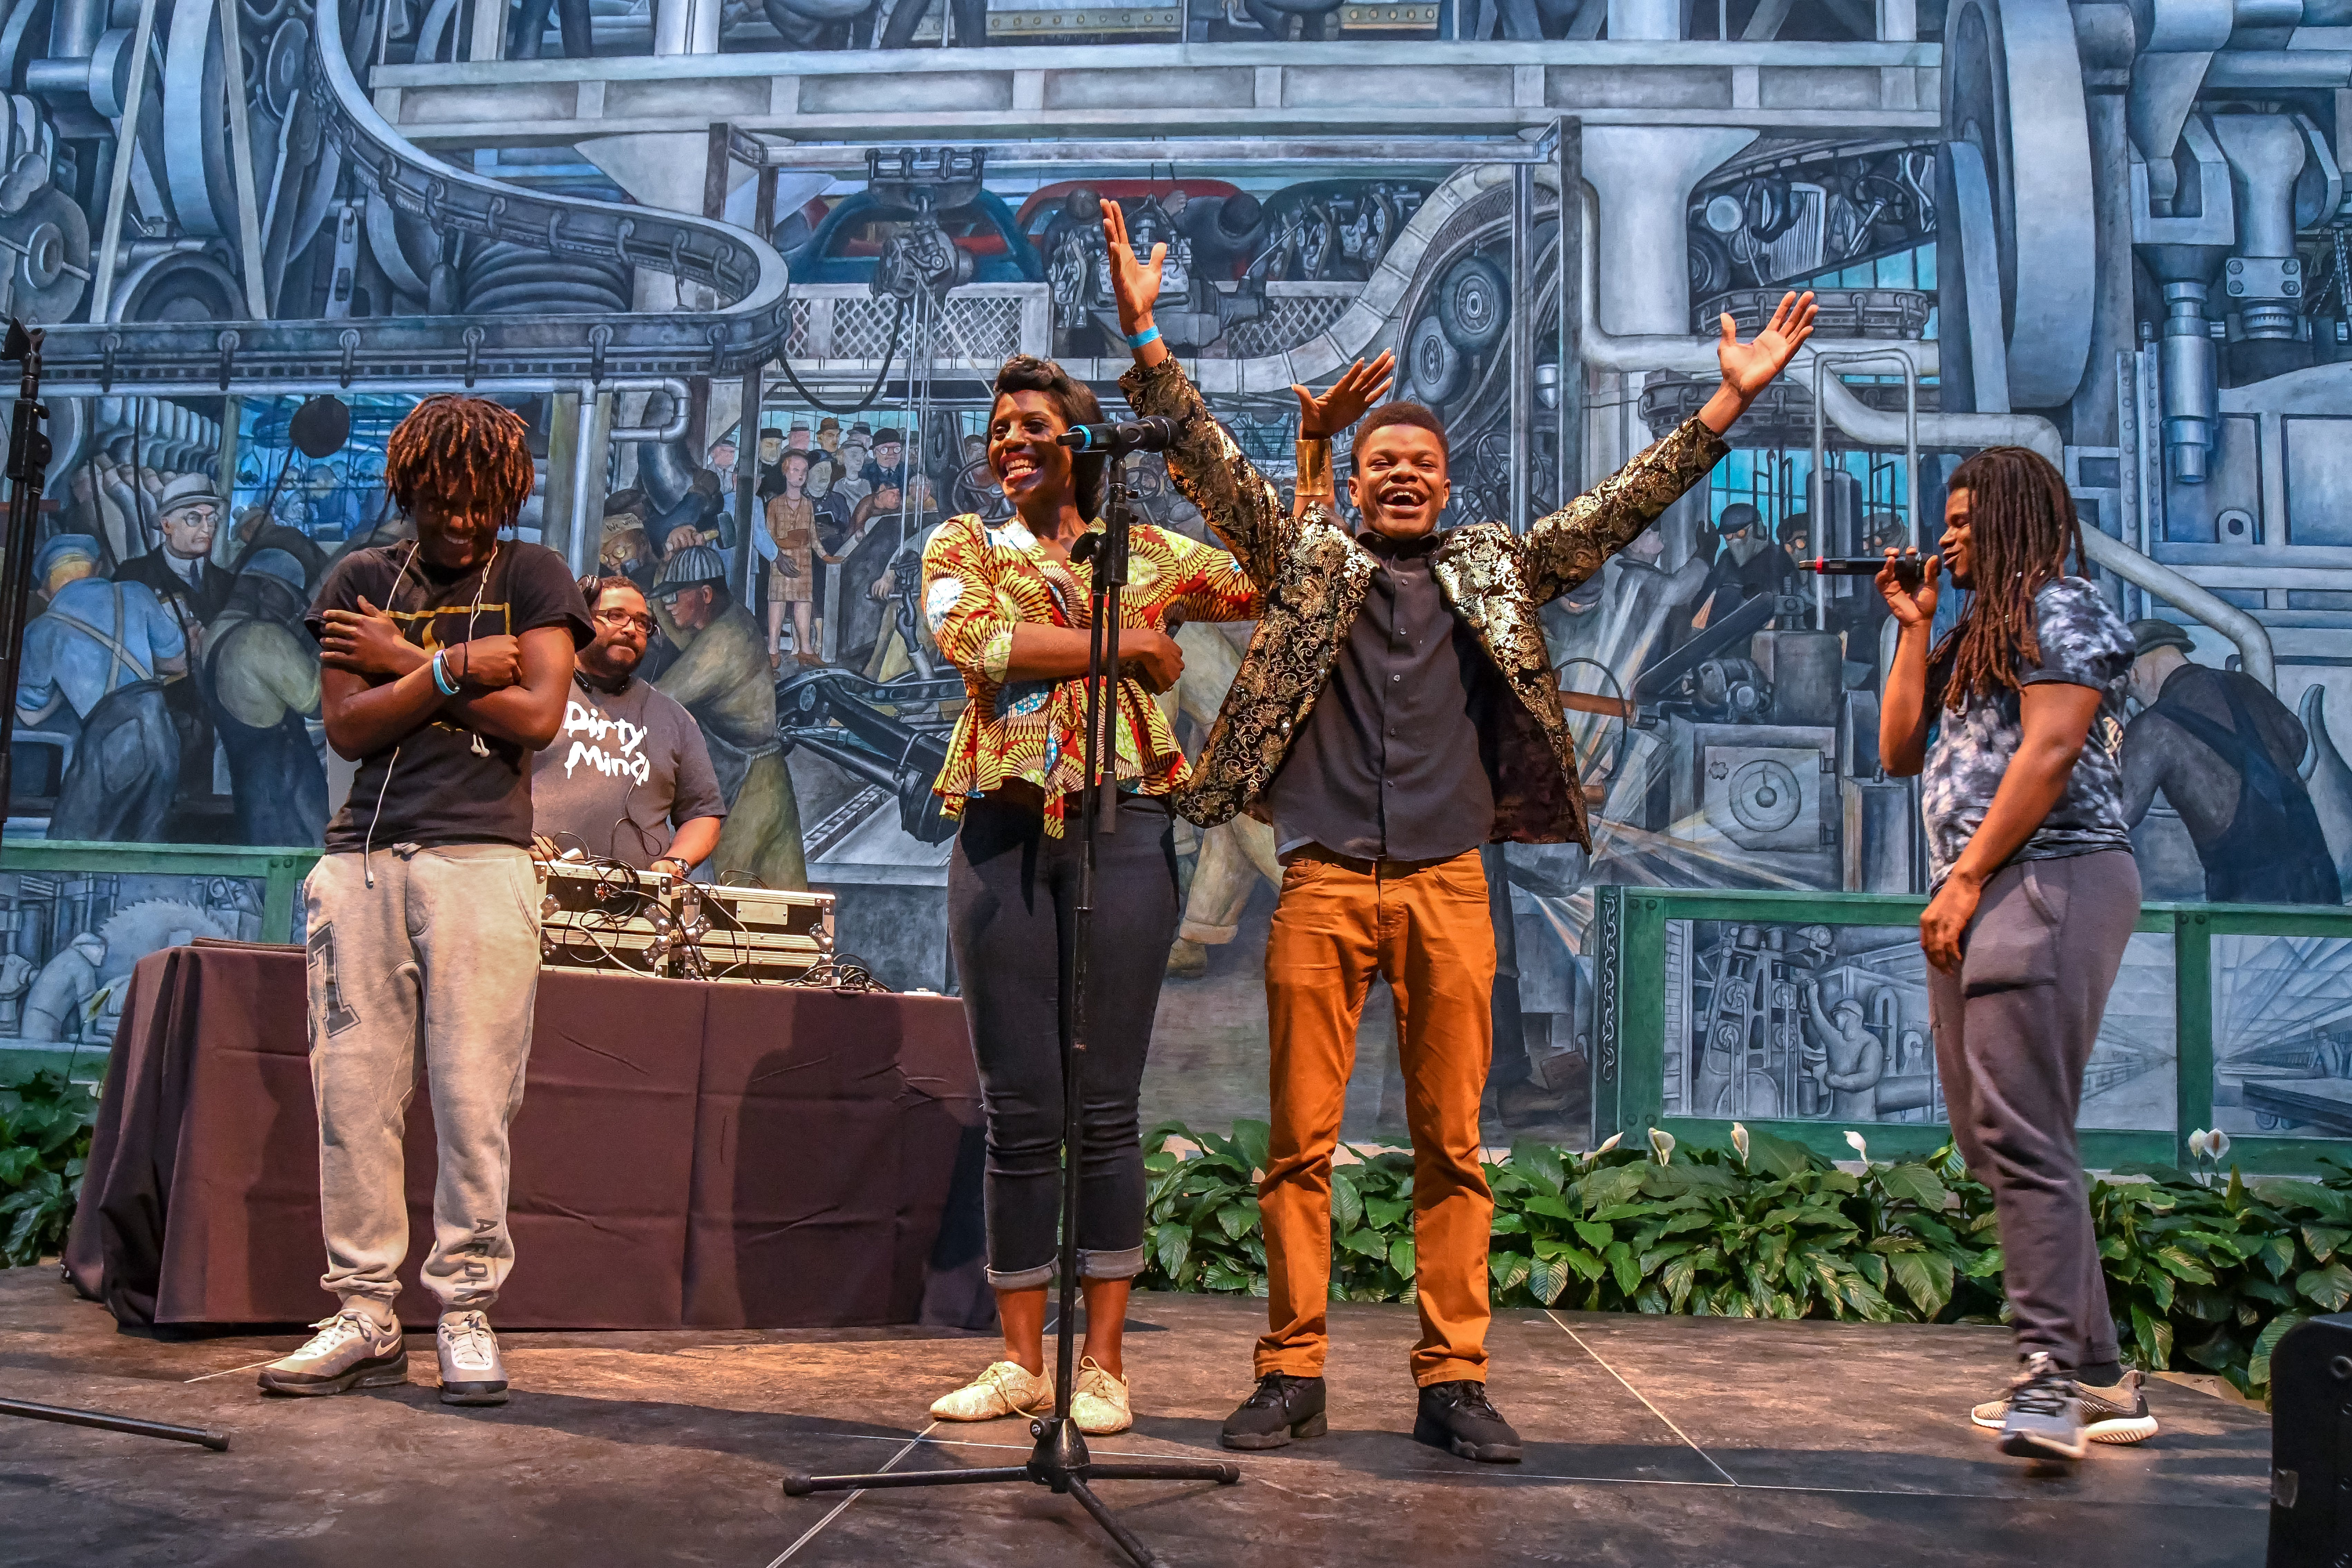 <p><em>Youth performing at an MC Olympics competition at the Detroit Institute of Arts. Photo Credit: Doug Coombe.&nbsp;</em></p>